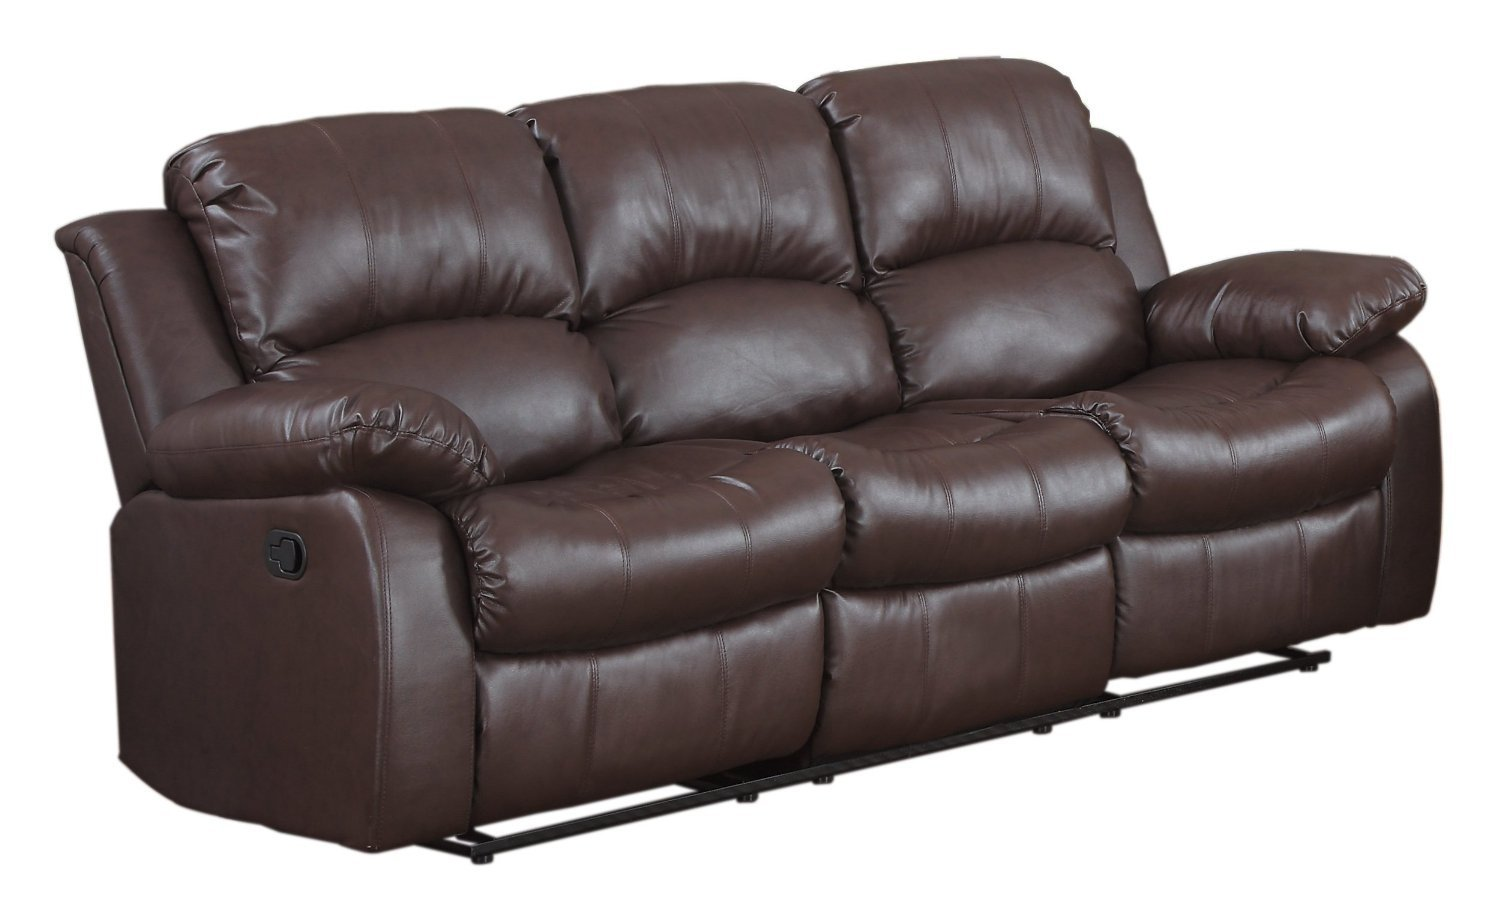 Elegant Amazon.com: Bonded Leather Double Recliner Sofa Living Room Reclining Couch  (Brown): Kitchen reclining leather sofa